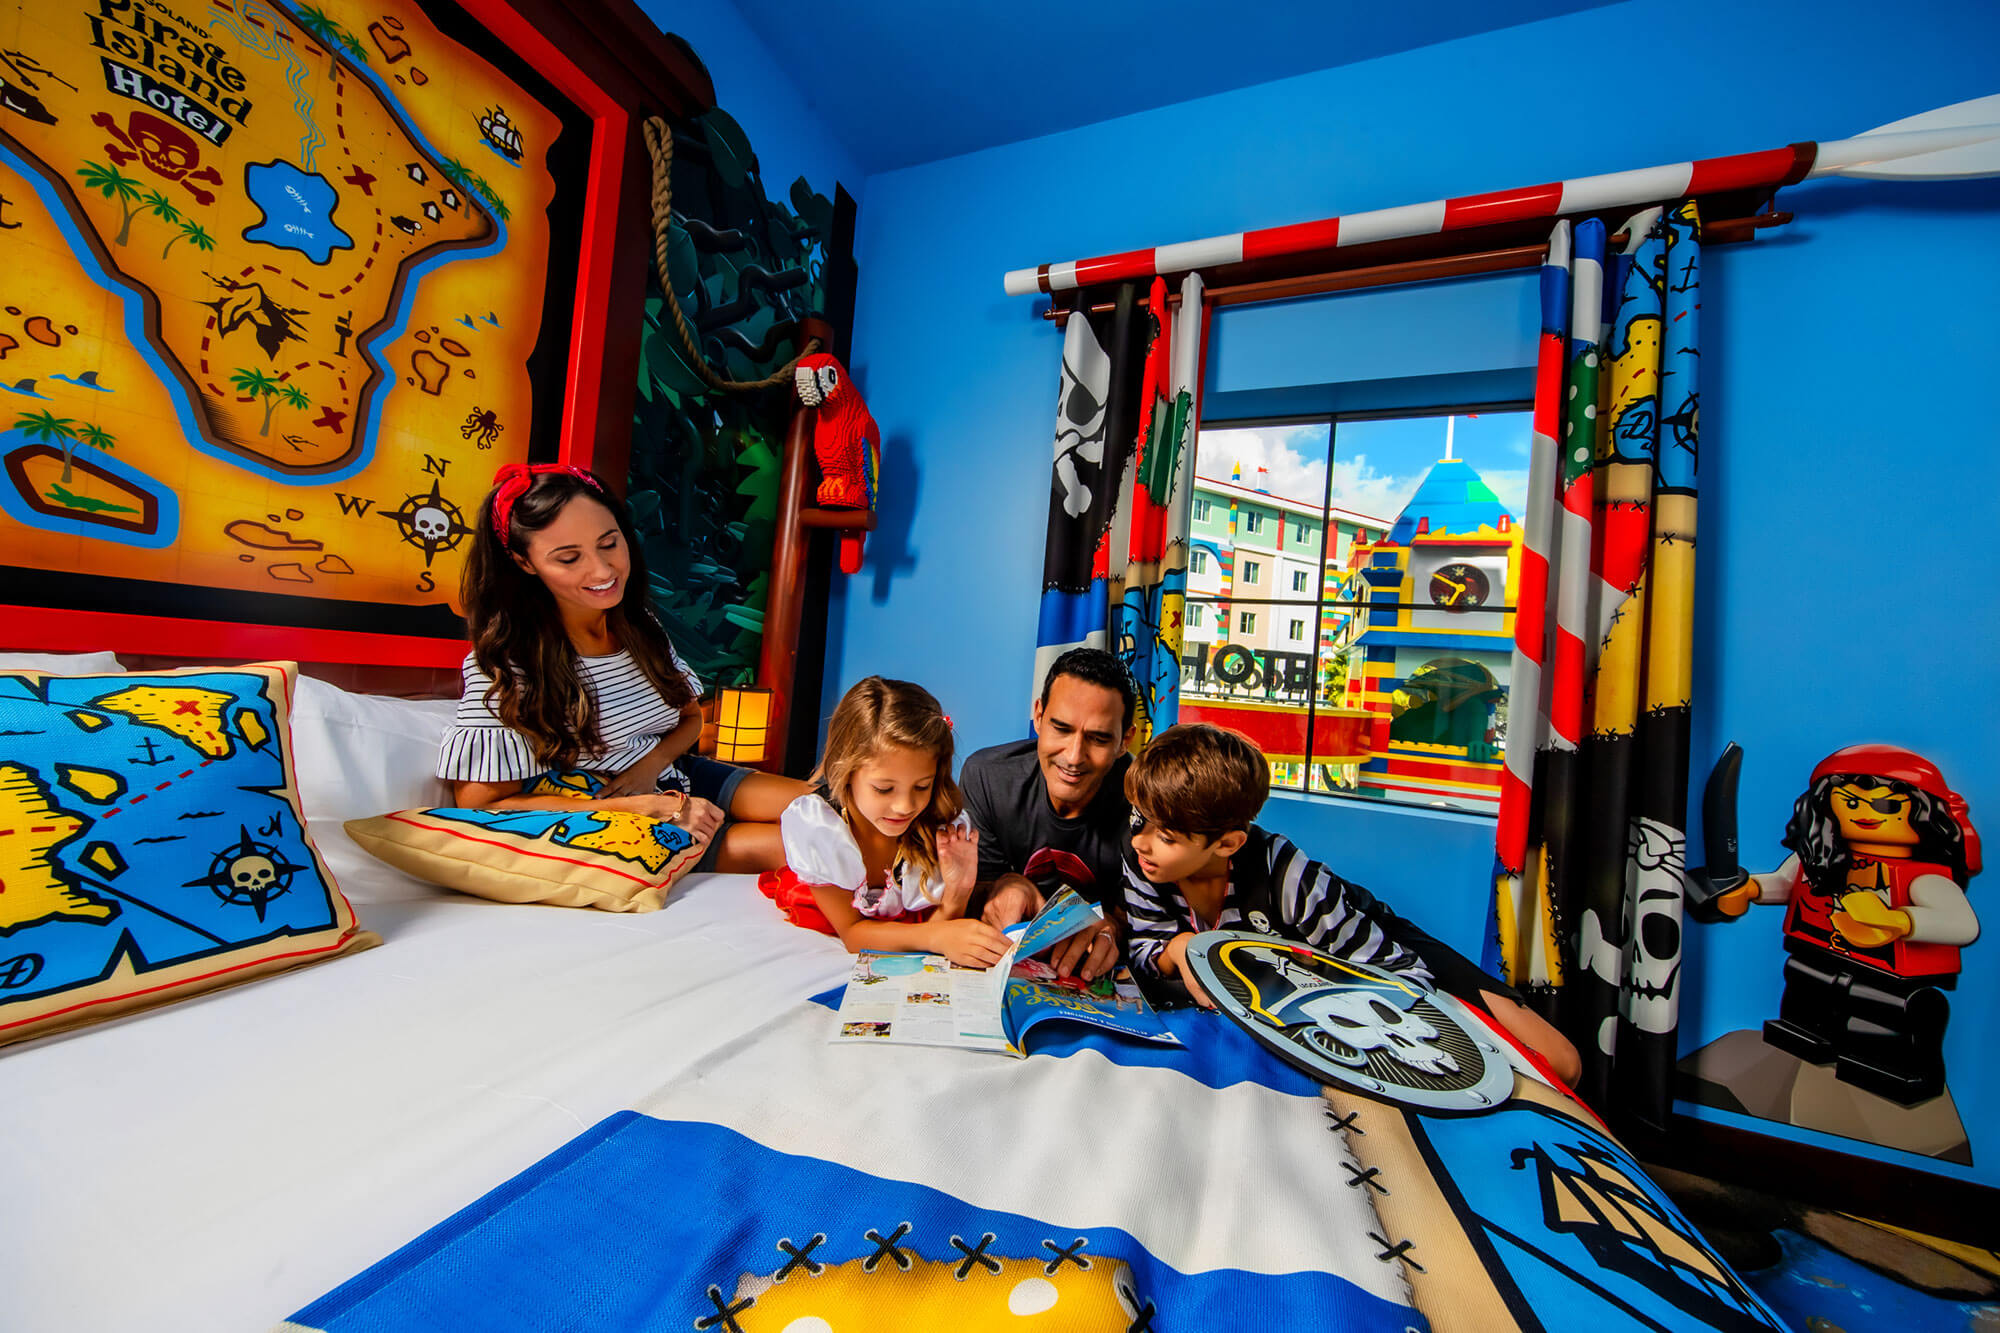 Family in guest Pirate Island Hotel guest room at LEGOLAND Florida Resort in Winter Haven, FL